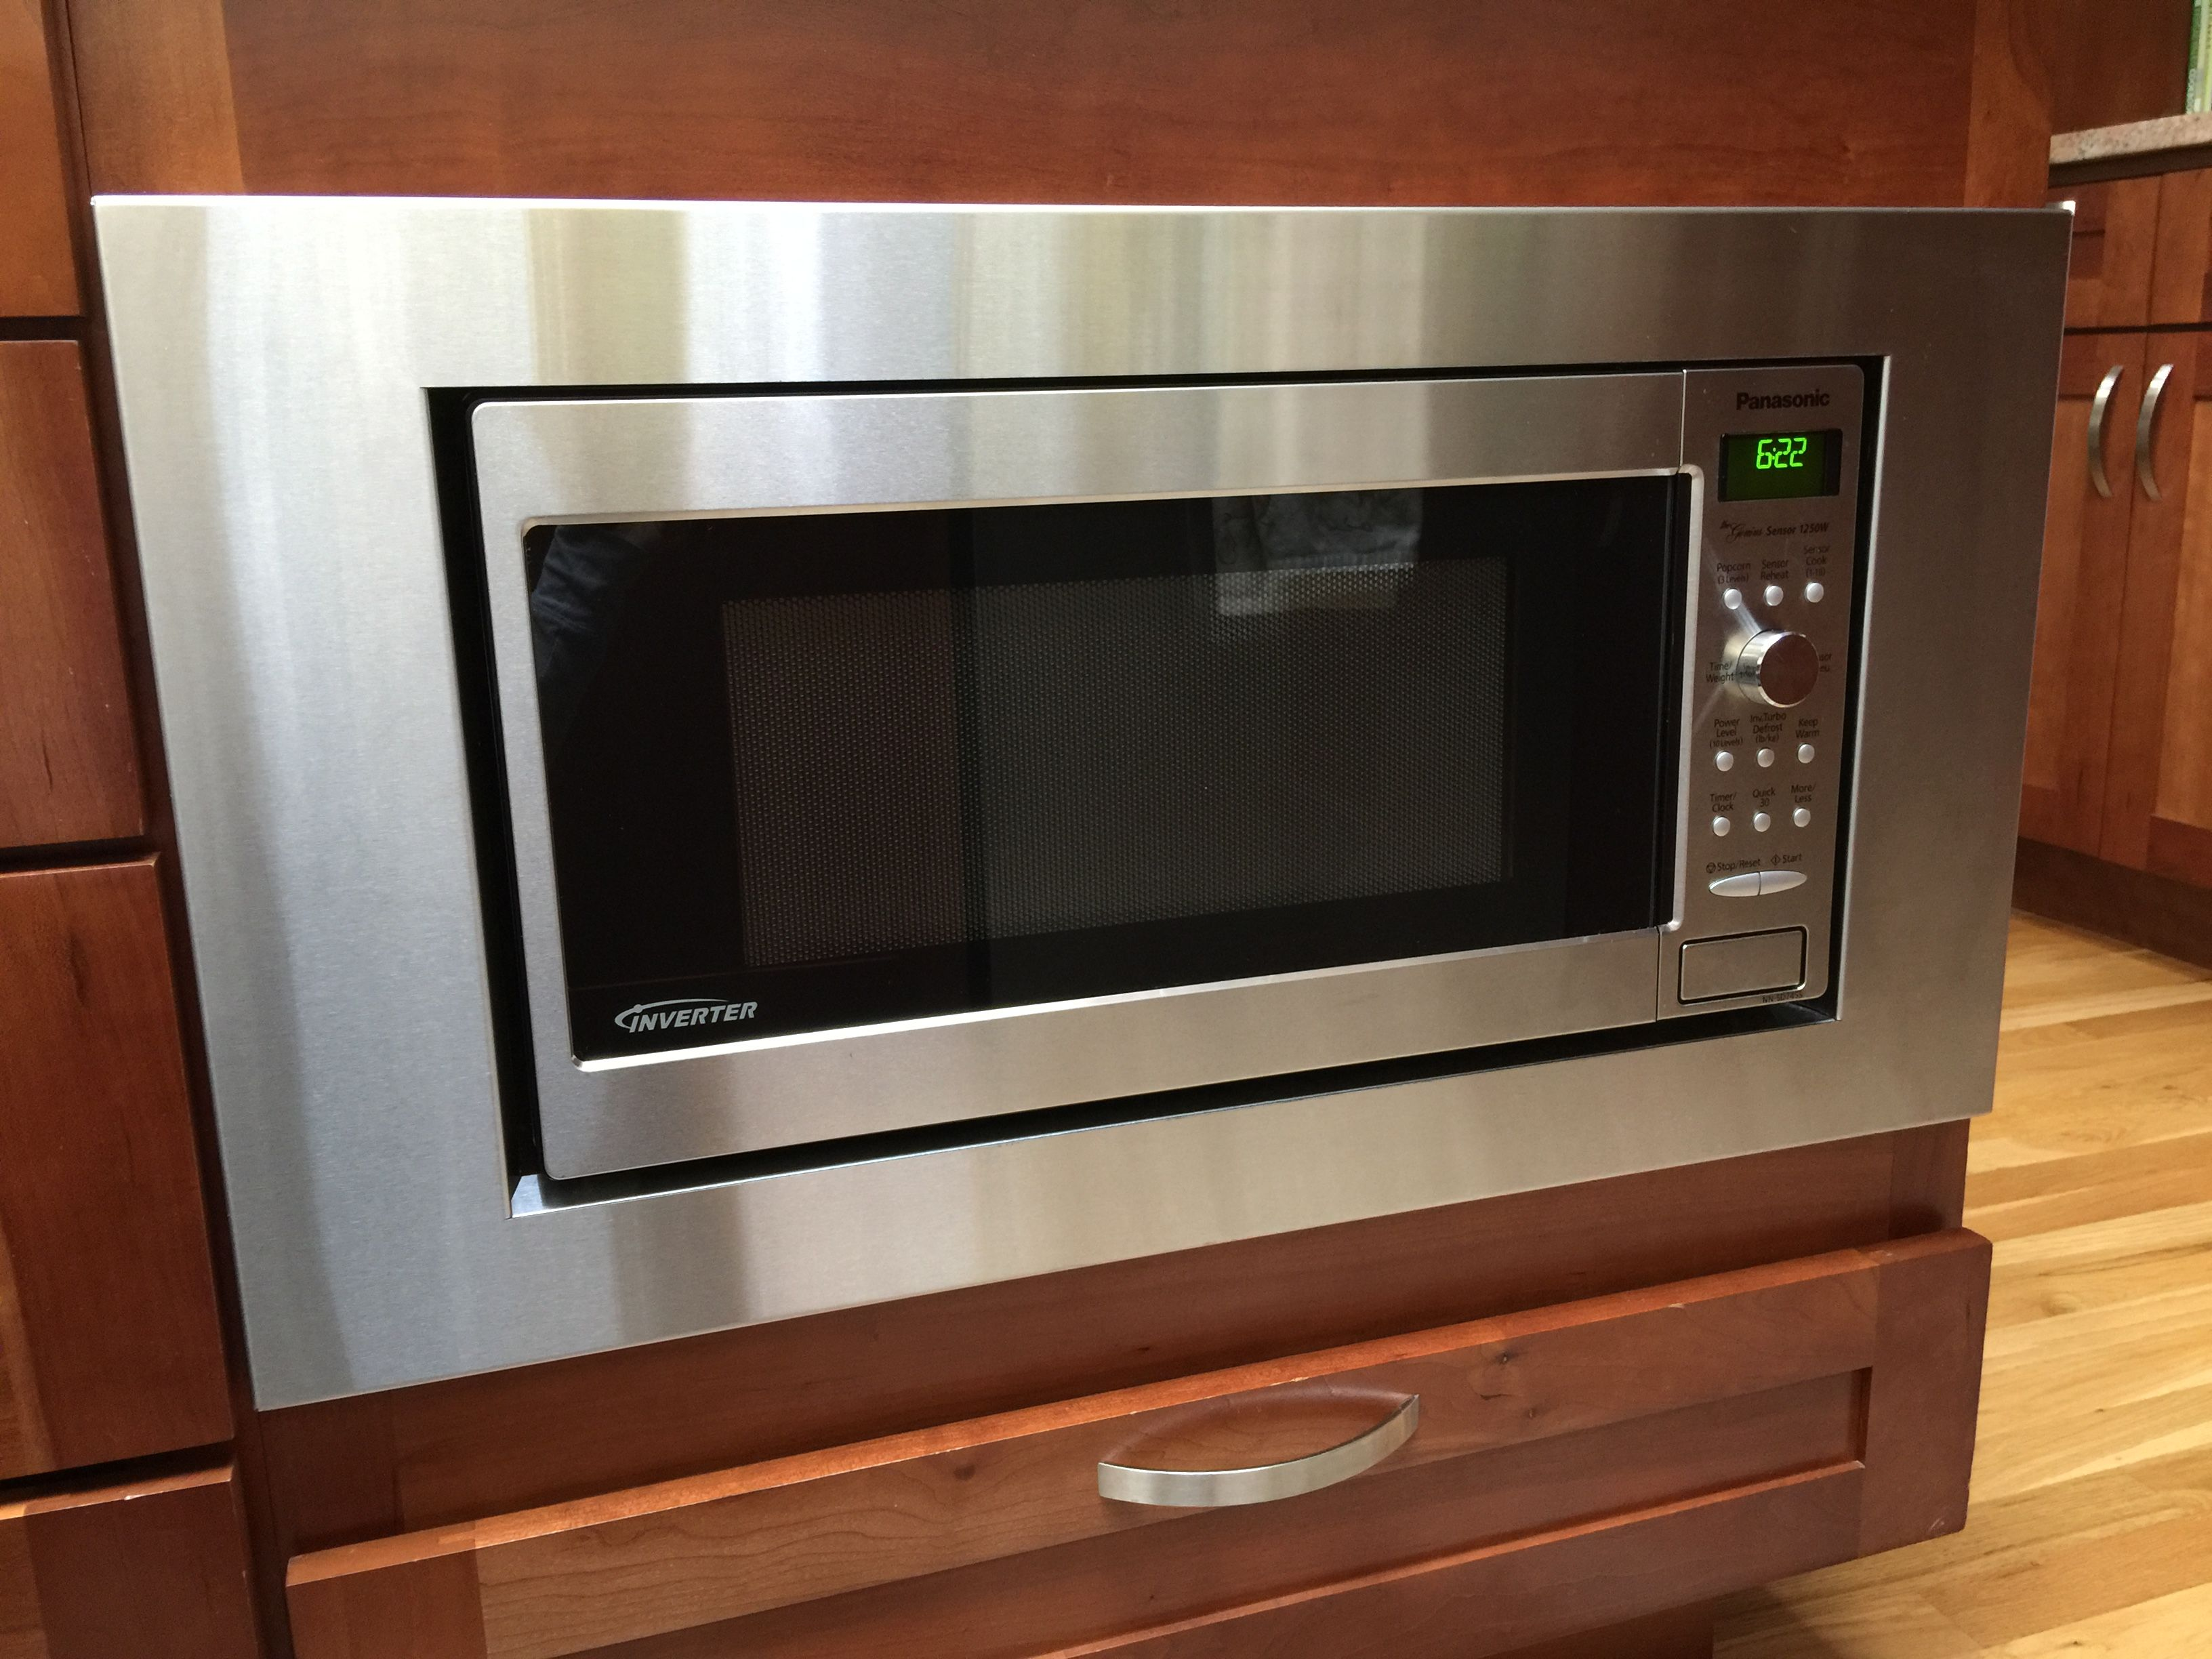 Attractive Custom Trim Kit For A Panasonic Microwave, Model # NN SD745S